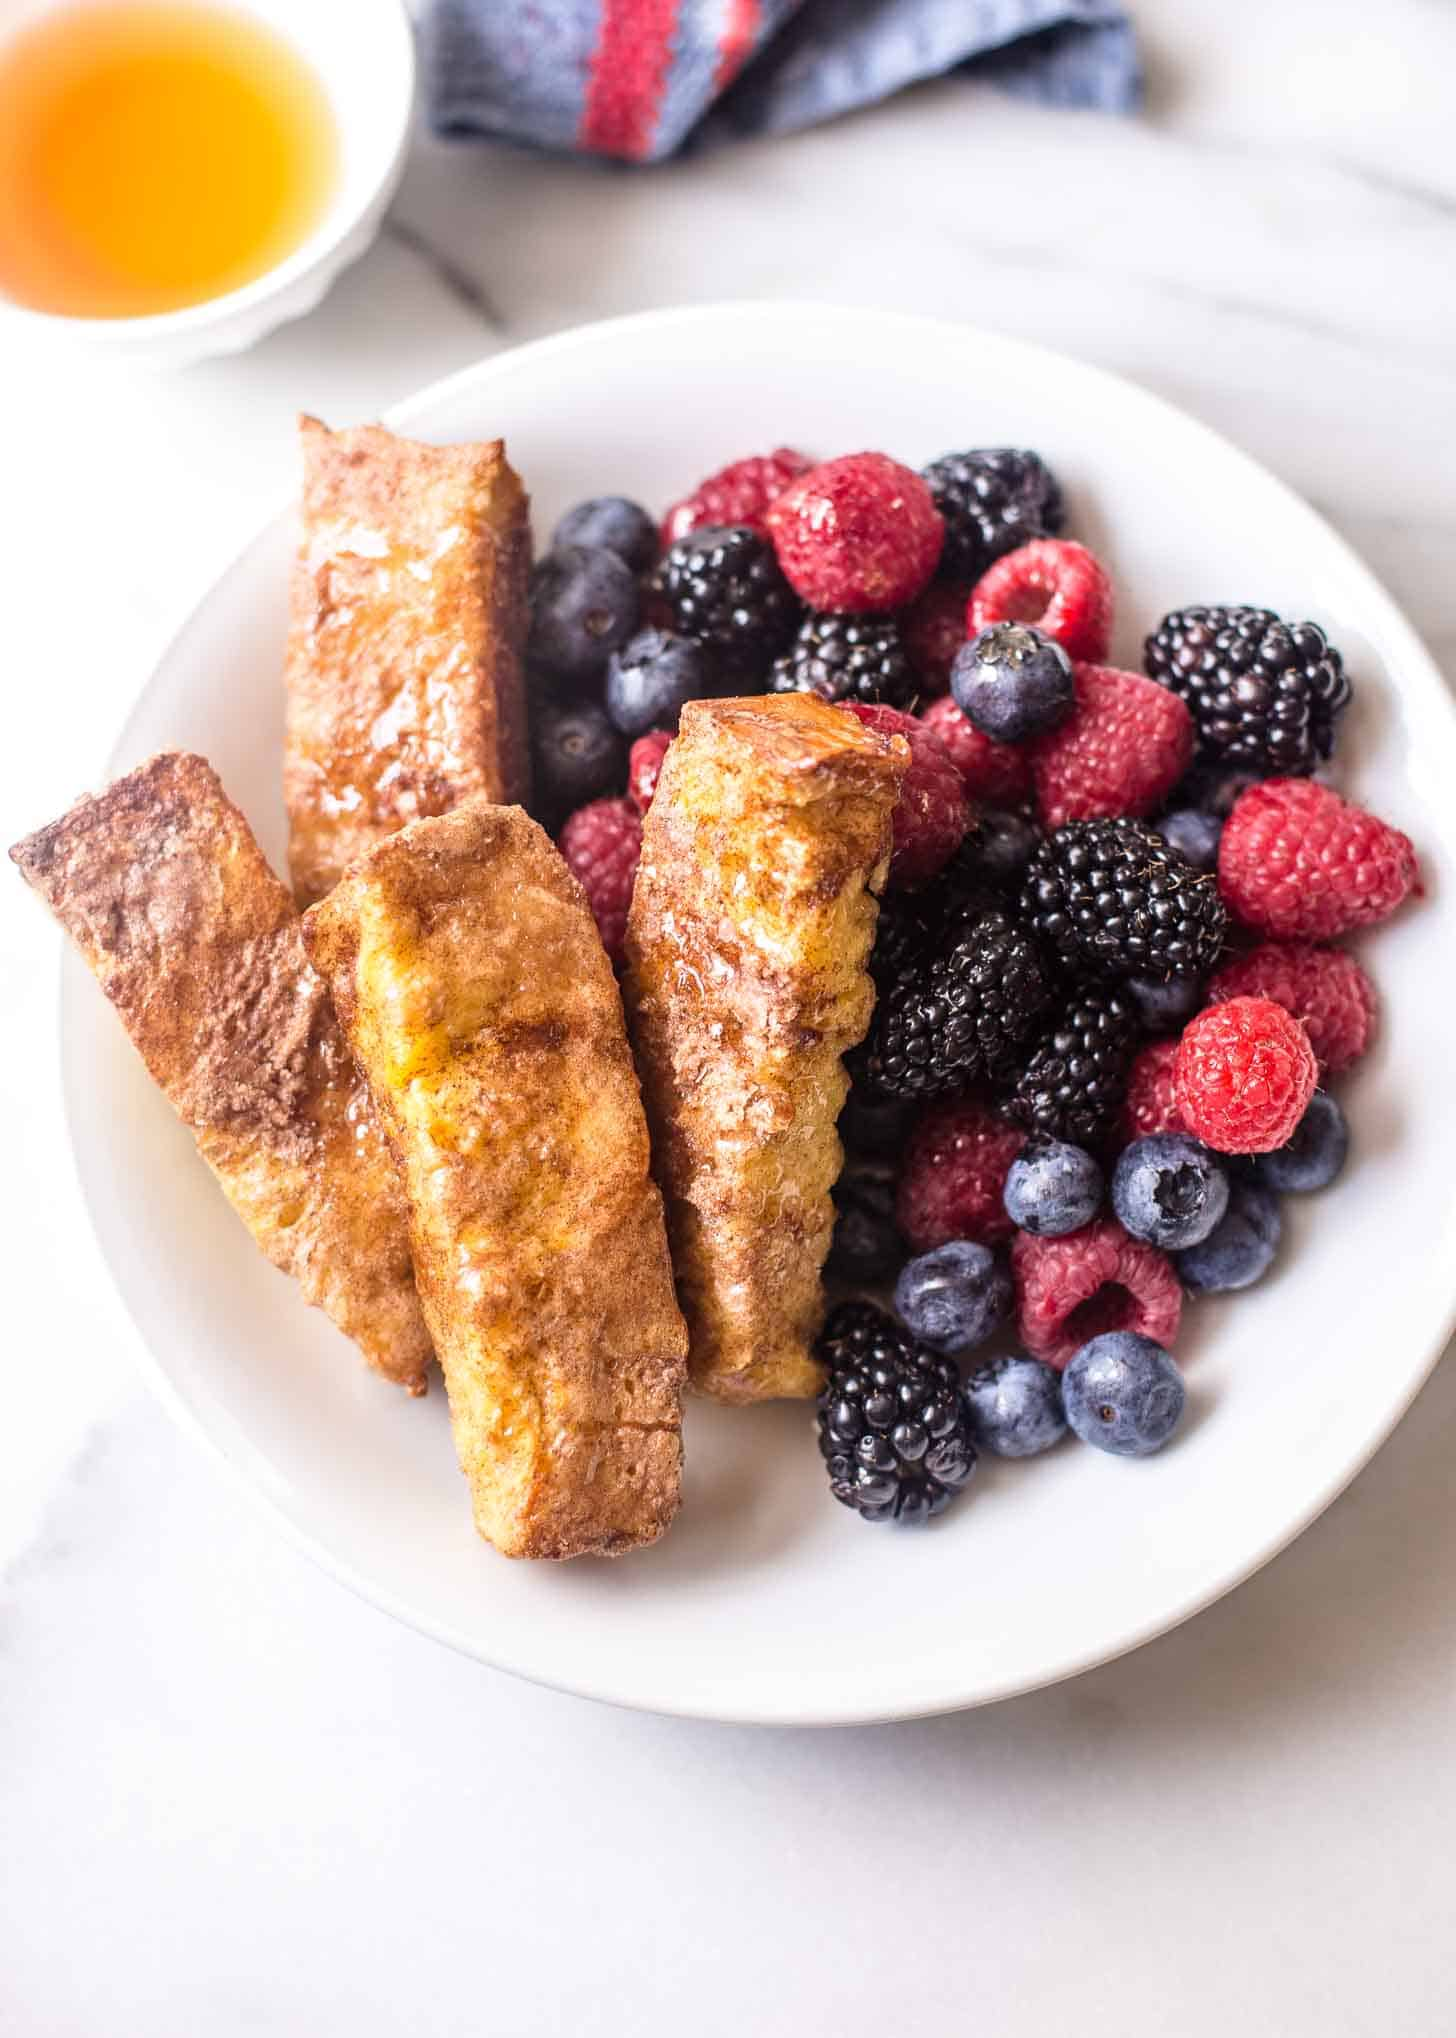 Baked Cinnamon French Toast Sticks with berries on a white plate